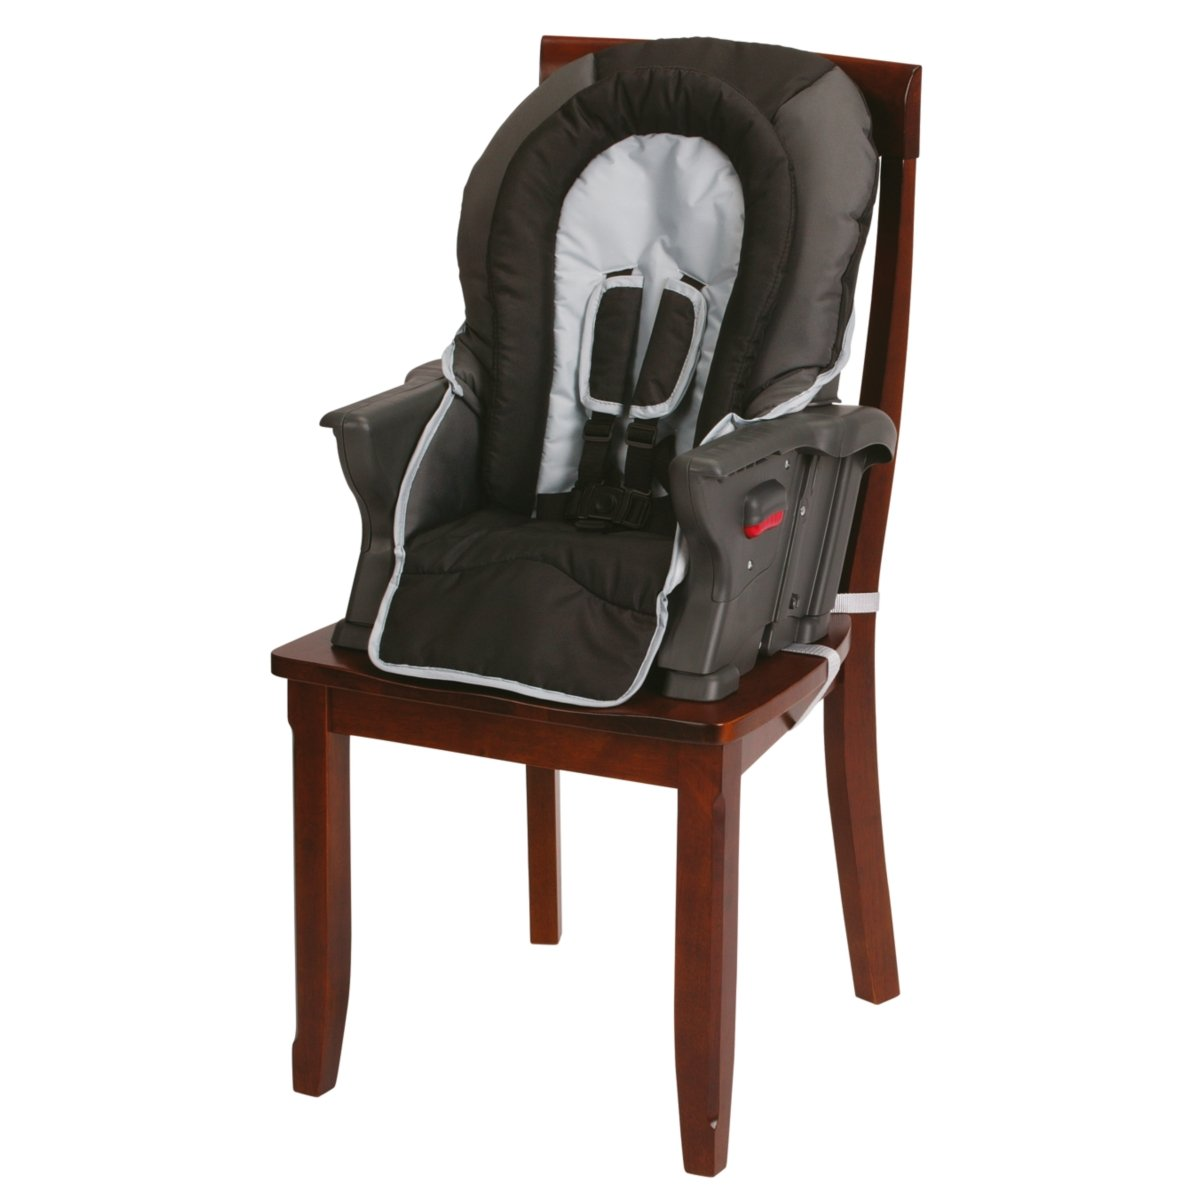 Graco 4 In One High Chair Graco Duodiner Lx Highchair Metropolis New Free Shipping